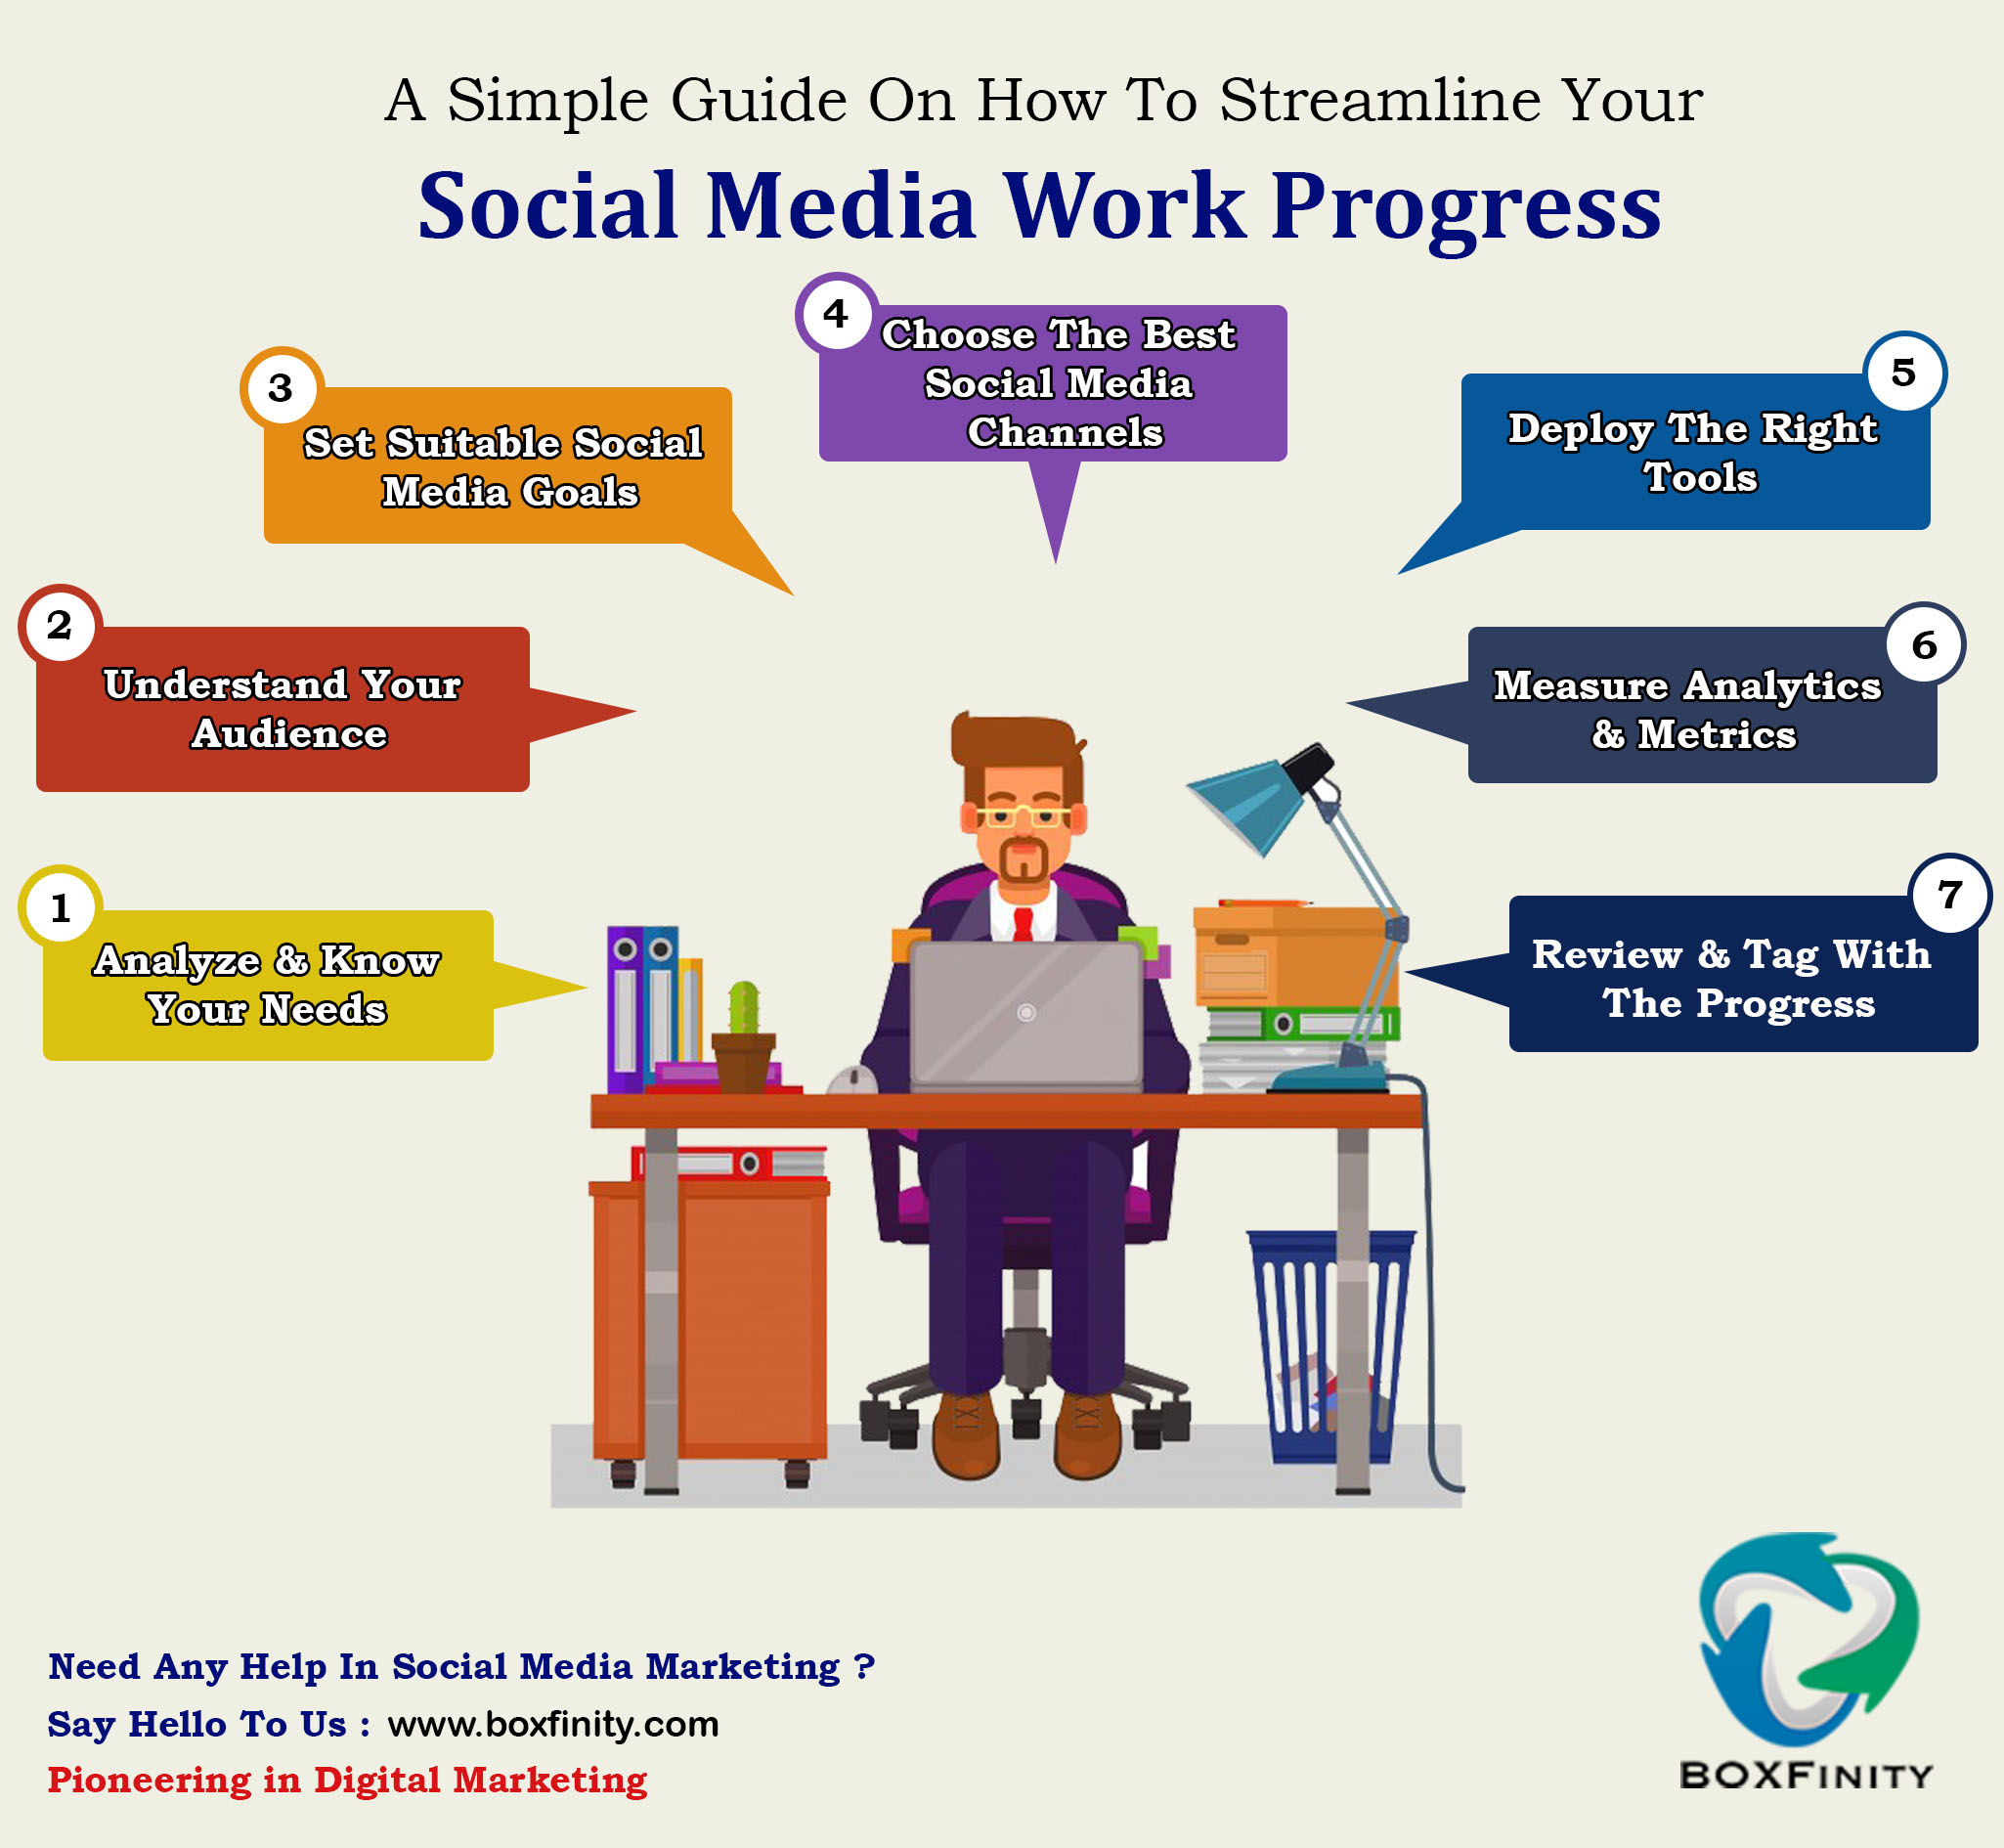 A-Simple-Guide-On-How-To-Streamline-Your-Social-Media-Work-Progress-infographic-plaza